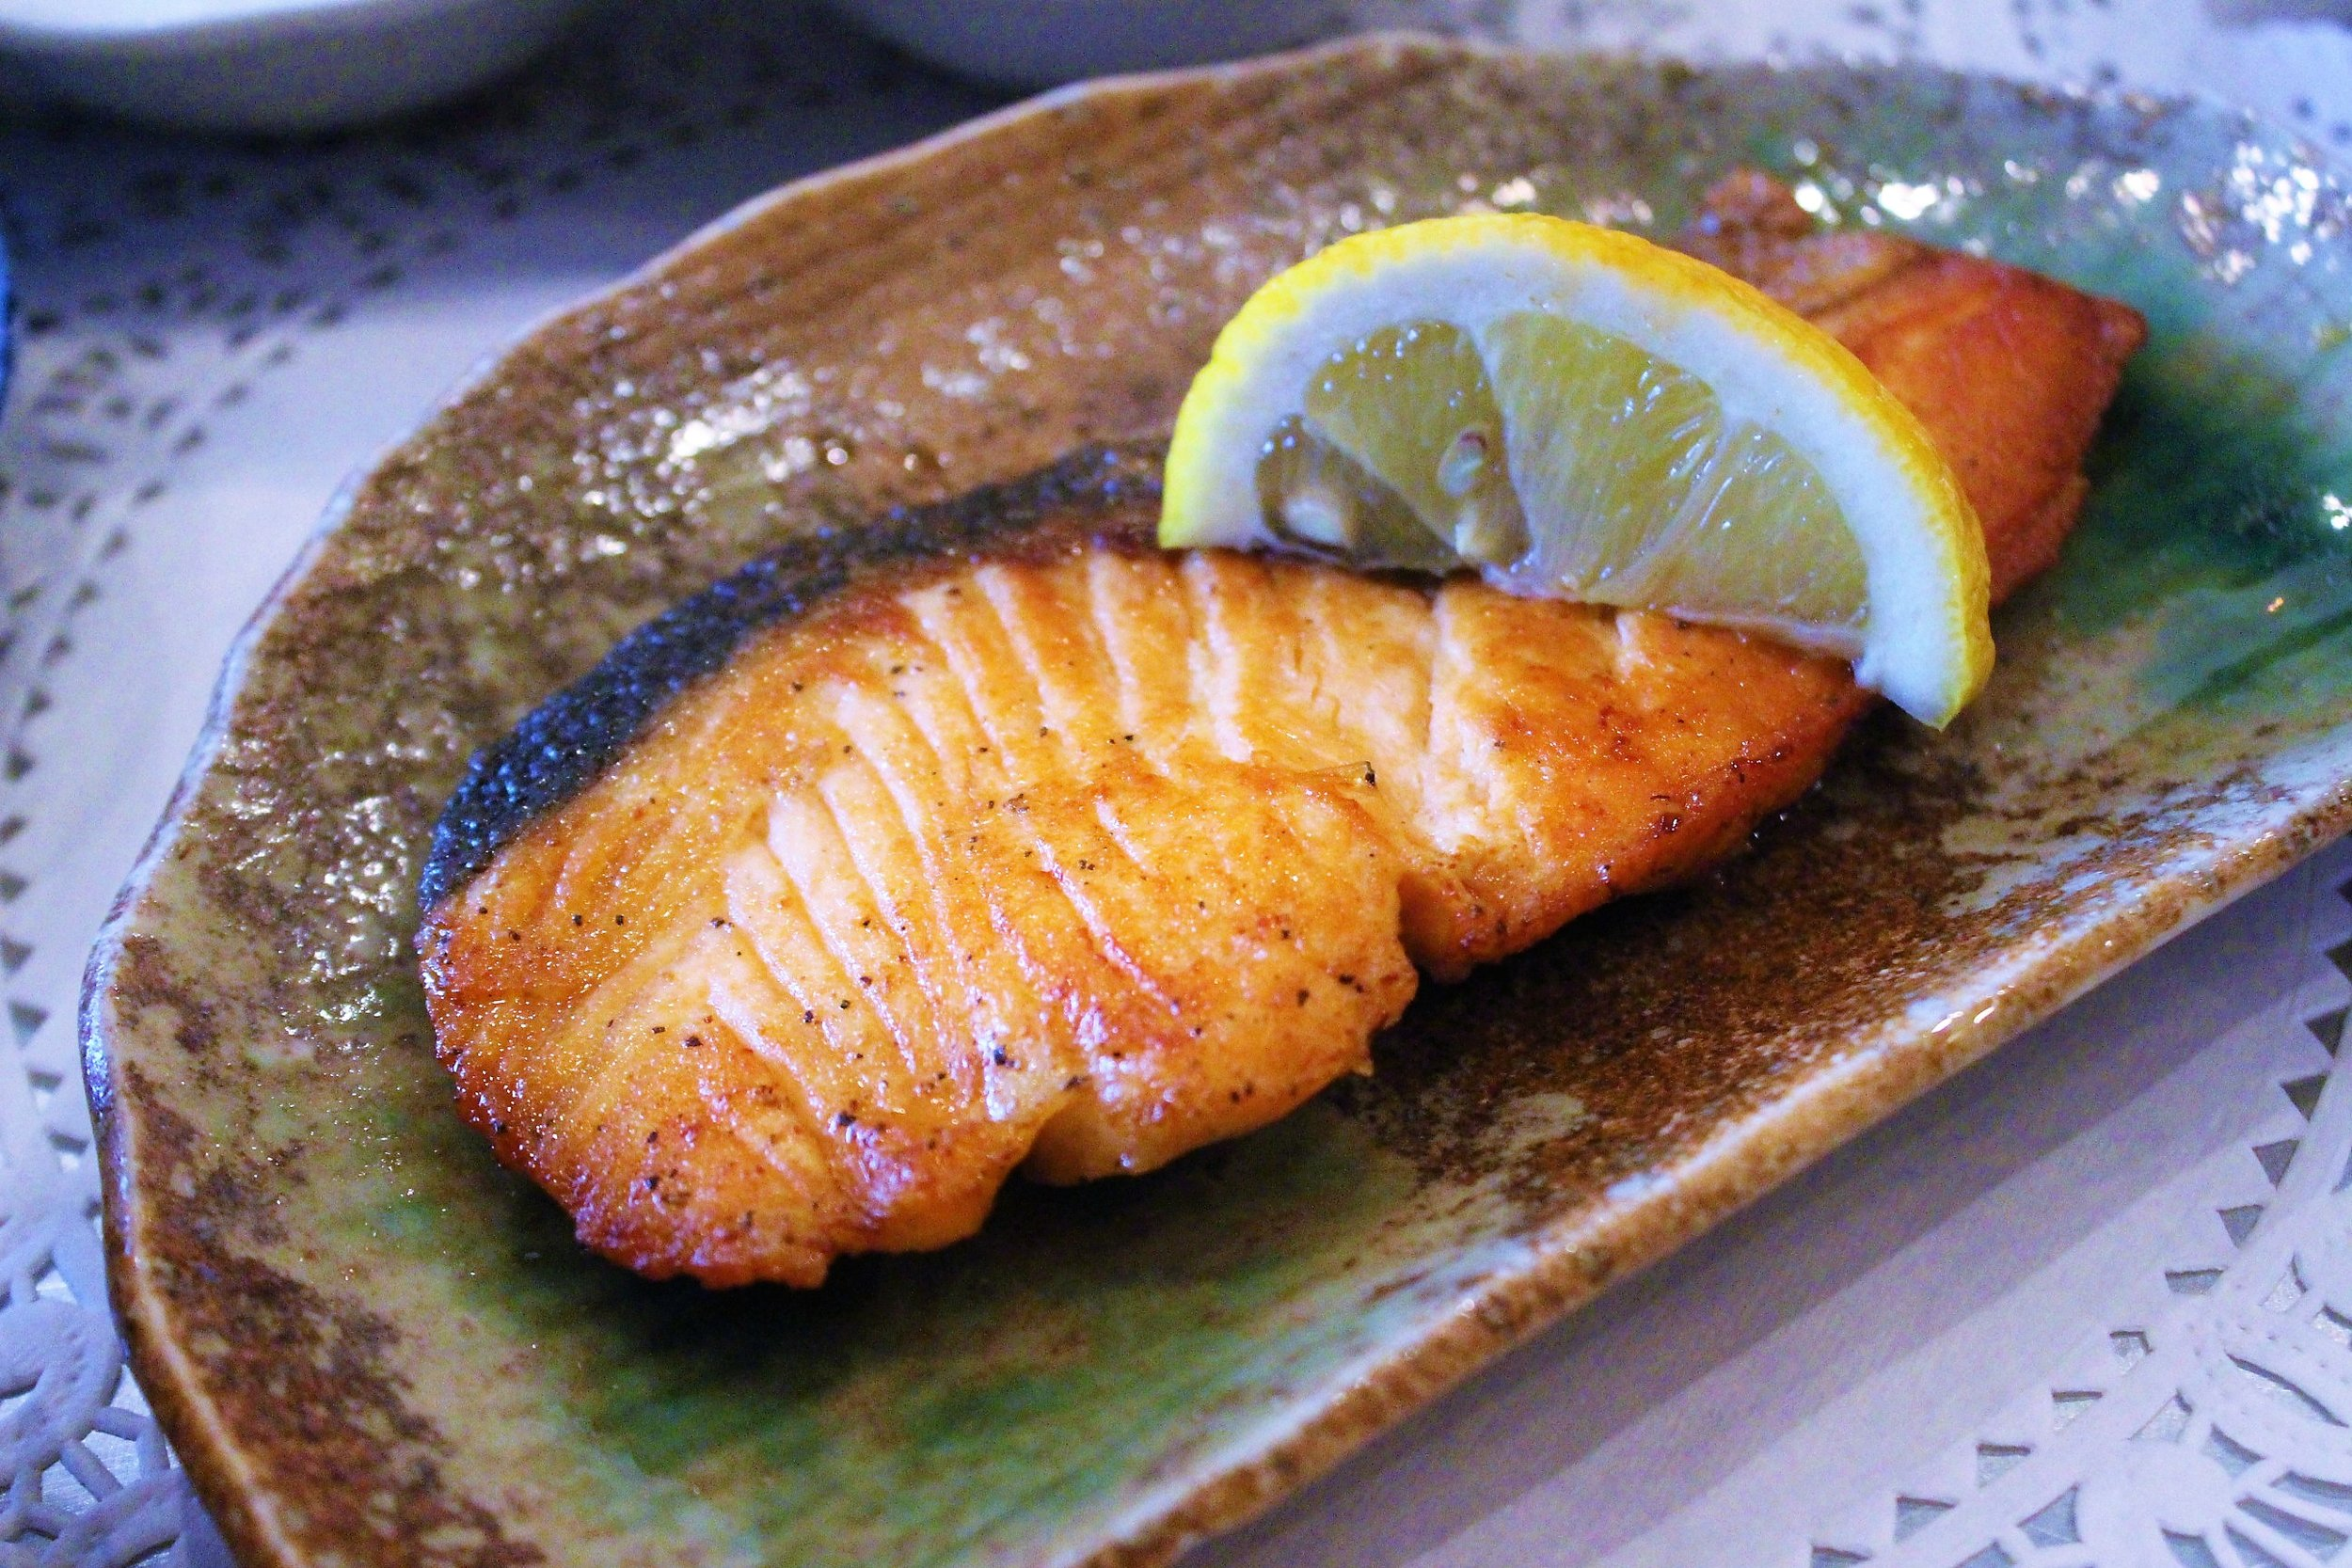 Grilled Salmon with Garlic Sauce at Her Name is Han in New York City